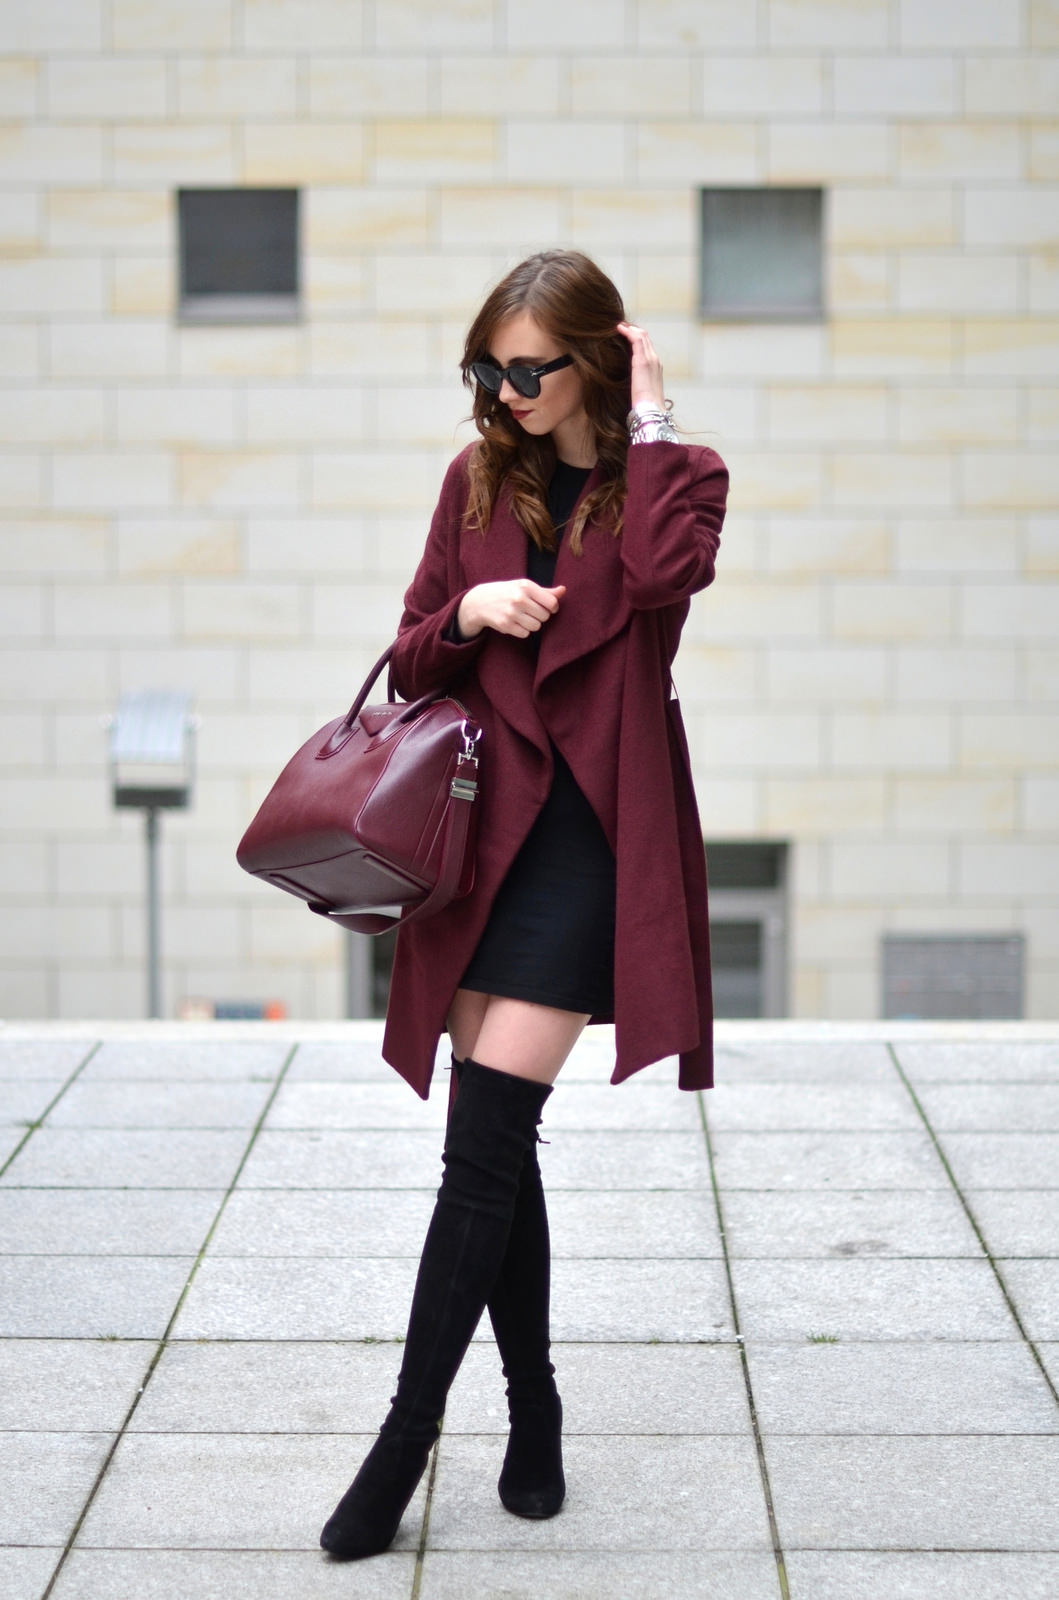 Barbora Ondrackova shows us another way to wear thigh high boots, wearing this pair with a little black dress and a matching burgundy coat and bag. Coat: Medicine, Dress: Zara, Boots: Stuart Weitzman, Bag: Givenchy.